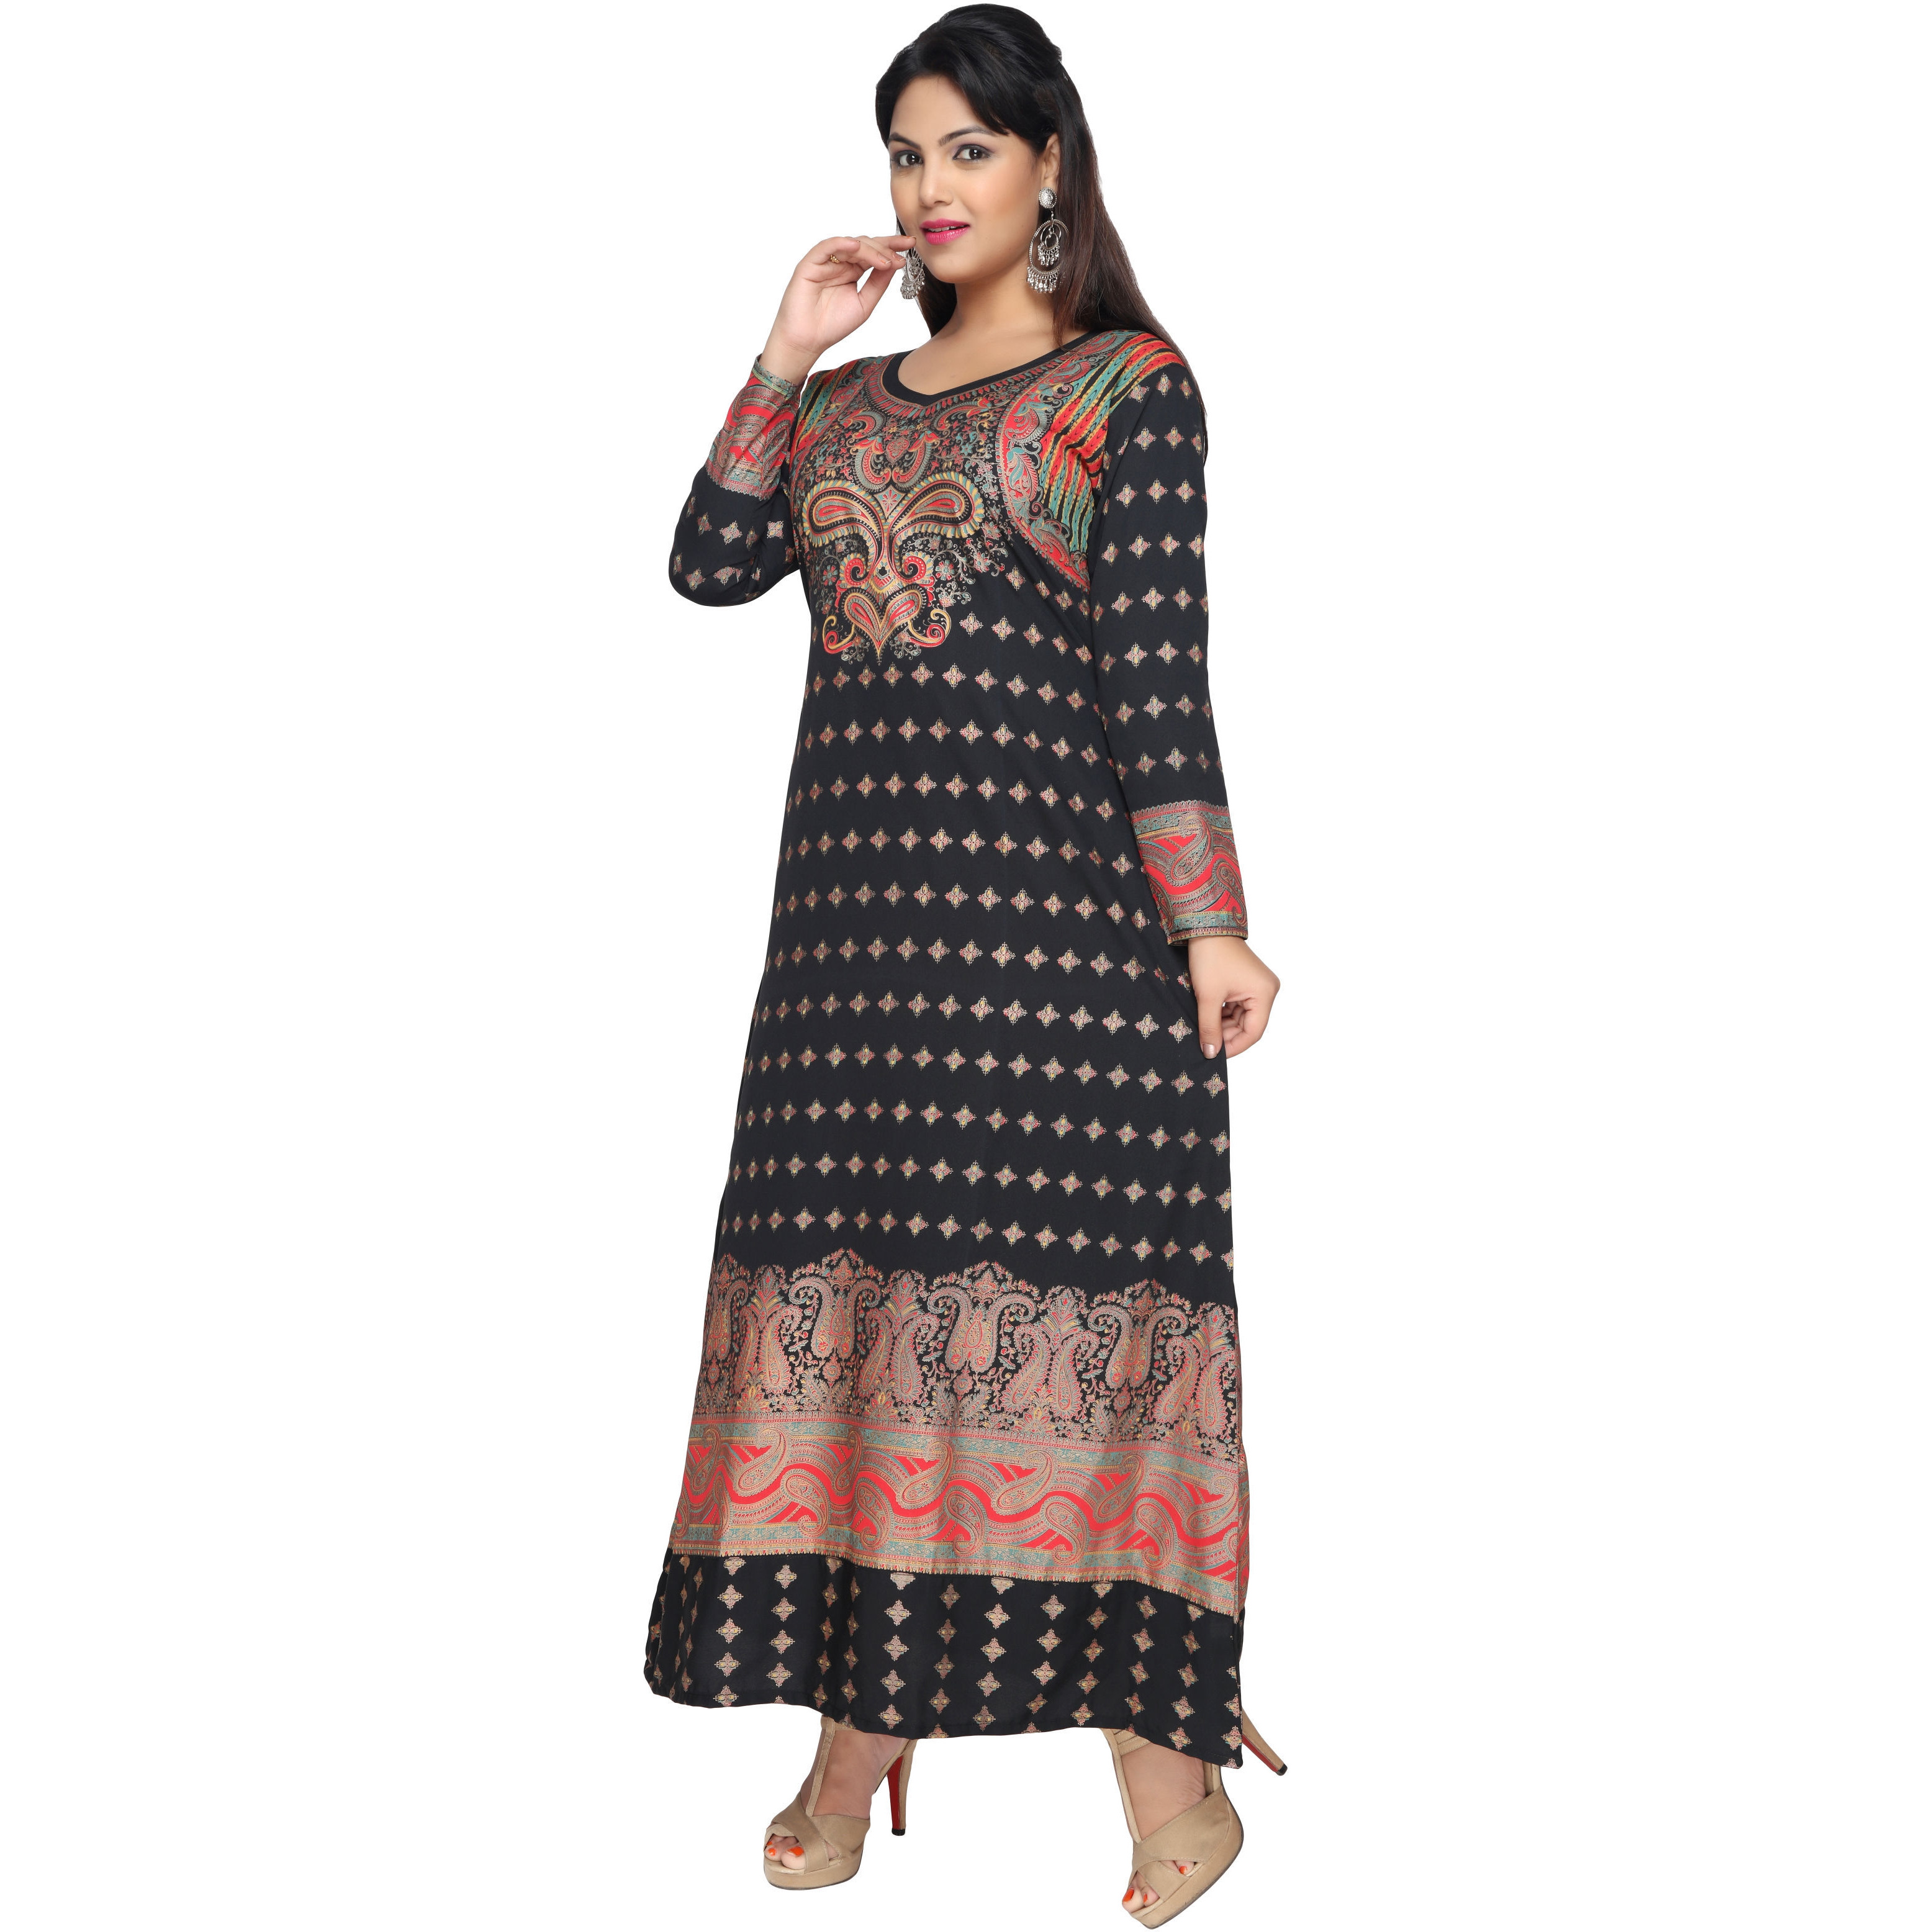 TrendyFashionMall Black Gold Print Kaftan Abaya Maxi Dress KFT01021 S-38 (Size:52 - 5X-LARGE, Color:TFMKFT01021-BLACK)